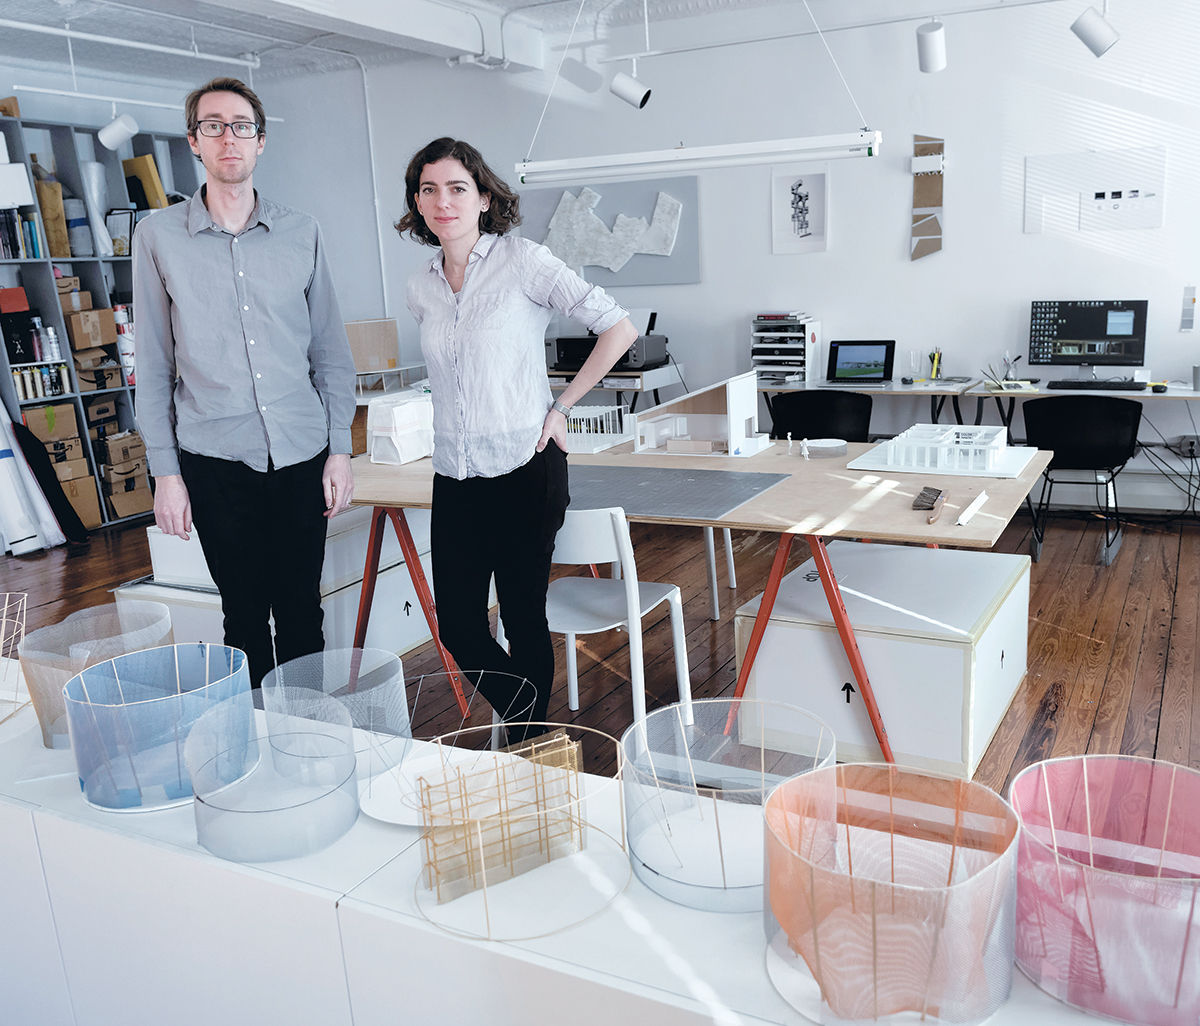 ACCLAIMED ARCHITECTURE: Aaron Forrest and Yasmin Vobis are the founders of Ultramoderne LLC, a Providence architectural firm that has recently won acclaim for one of its projects, a kiosk station called Chicago Horizon in Chicago. / PBN PHOTO/MICHAEL SALERNO